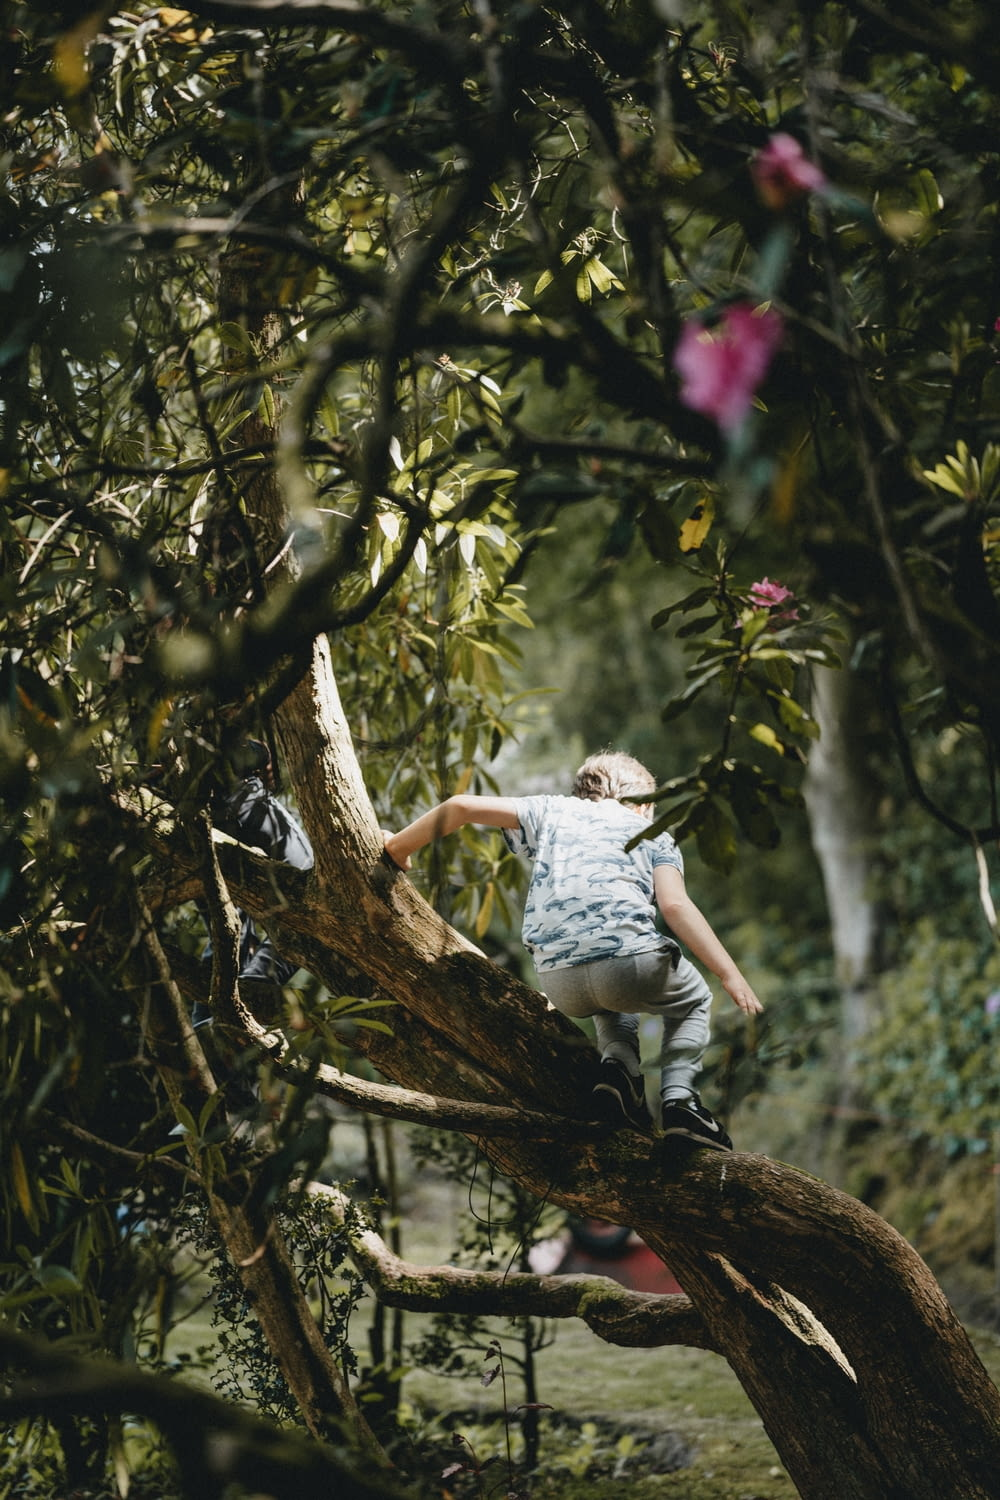 woman in white shirt sitting on tree branch